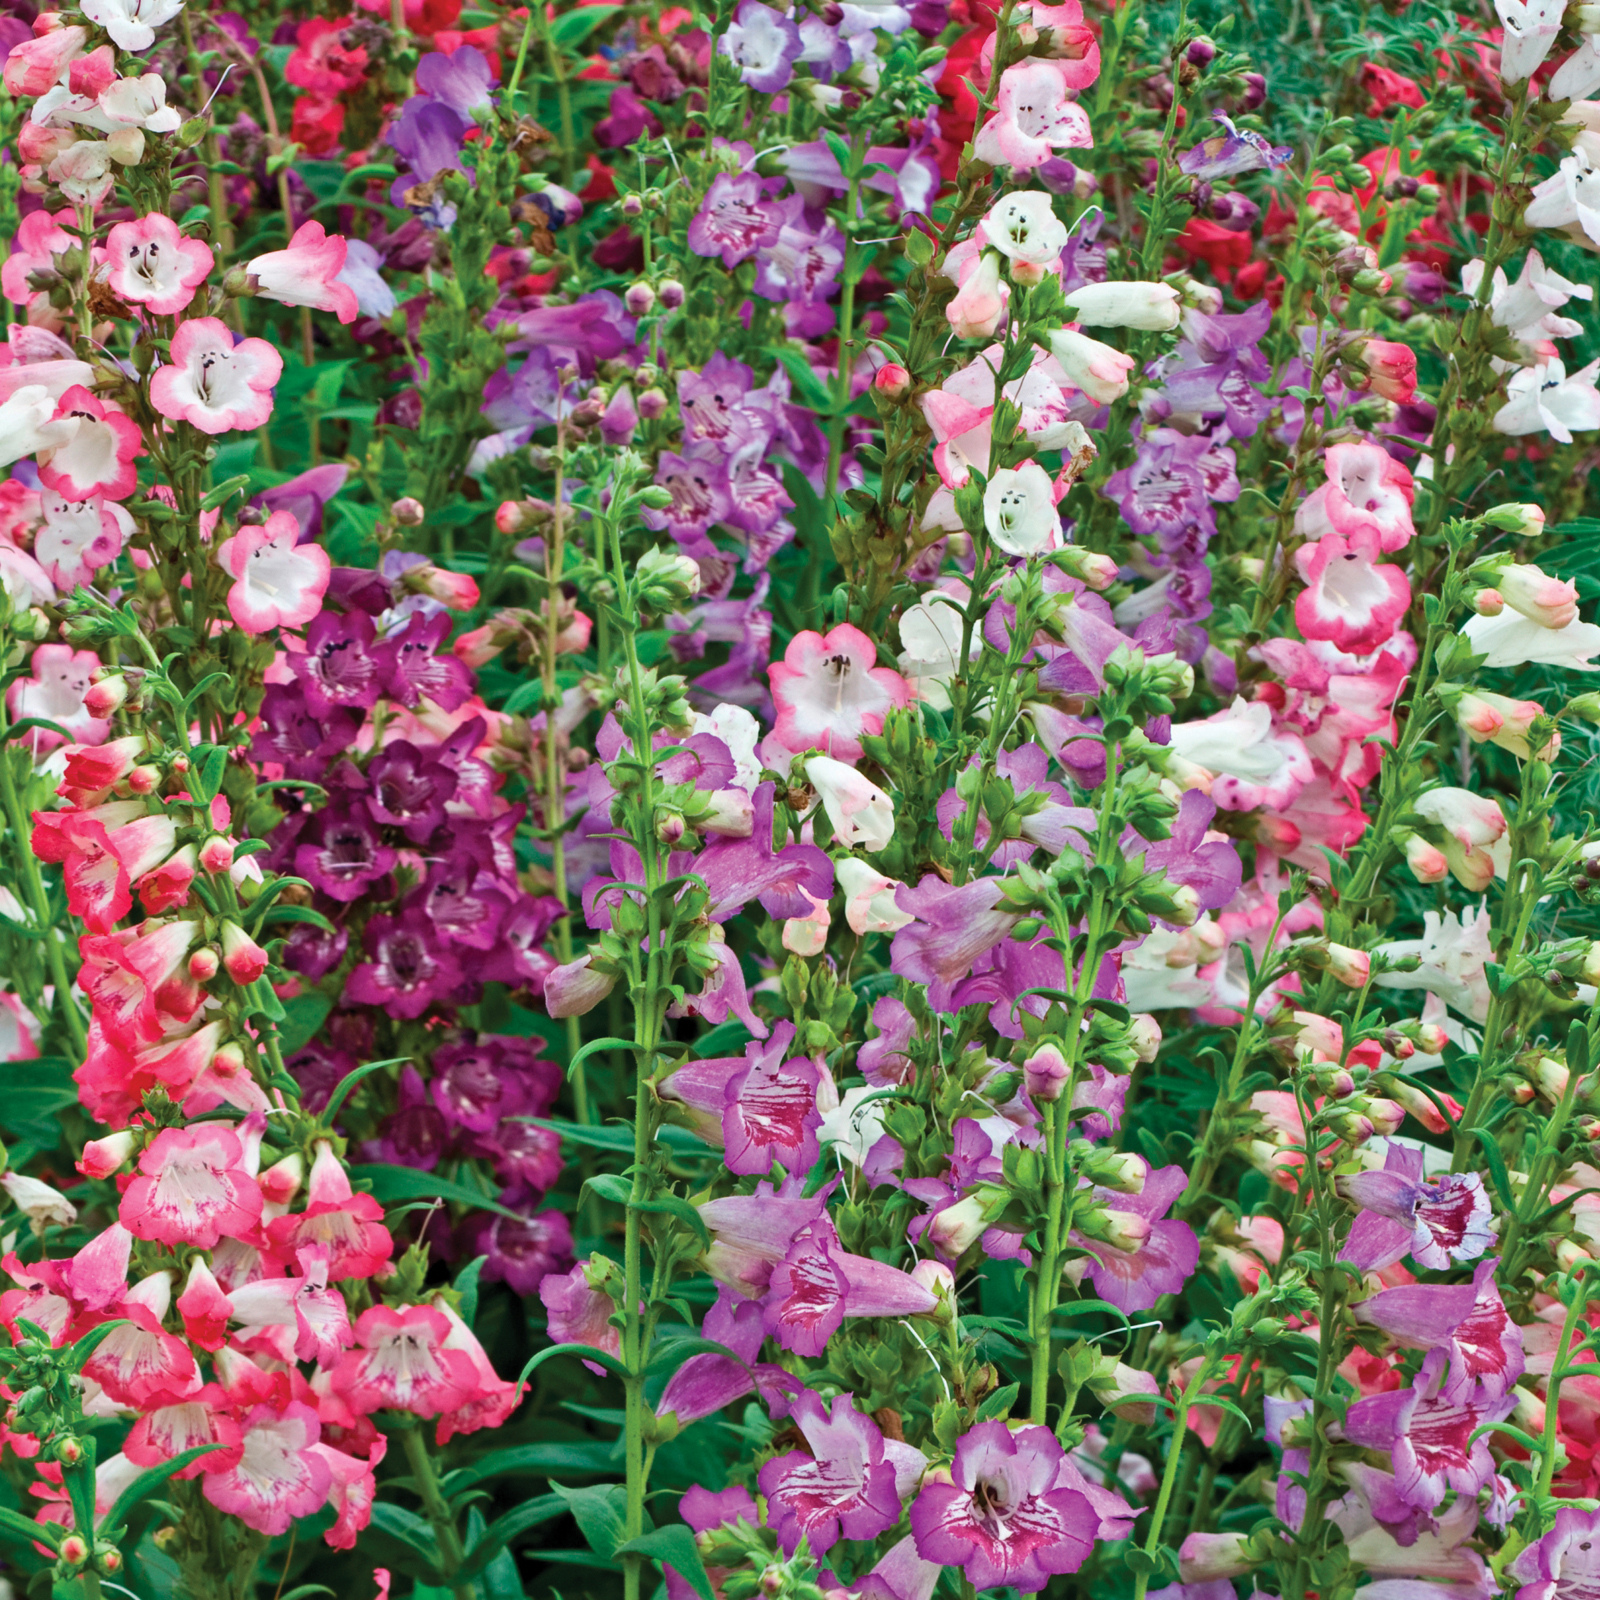 6. Penstemon Wedding Bells